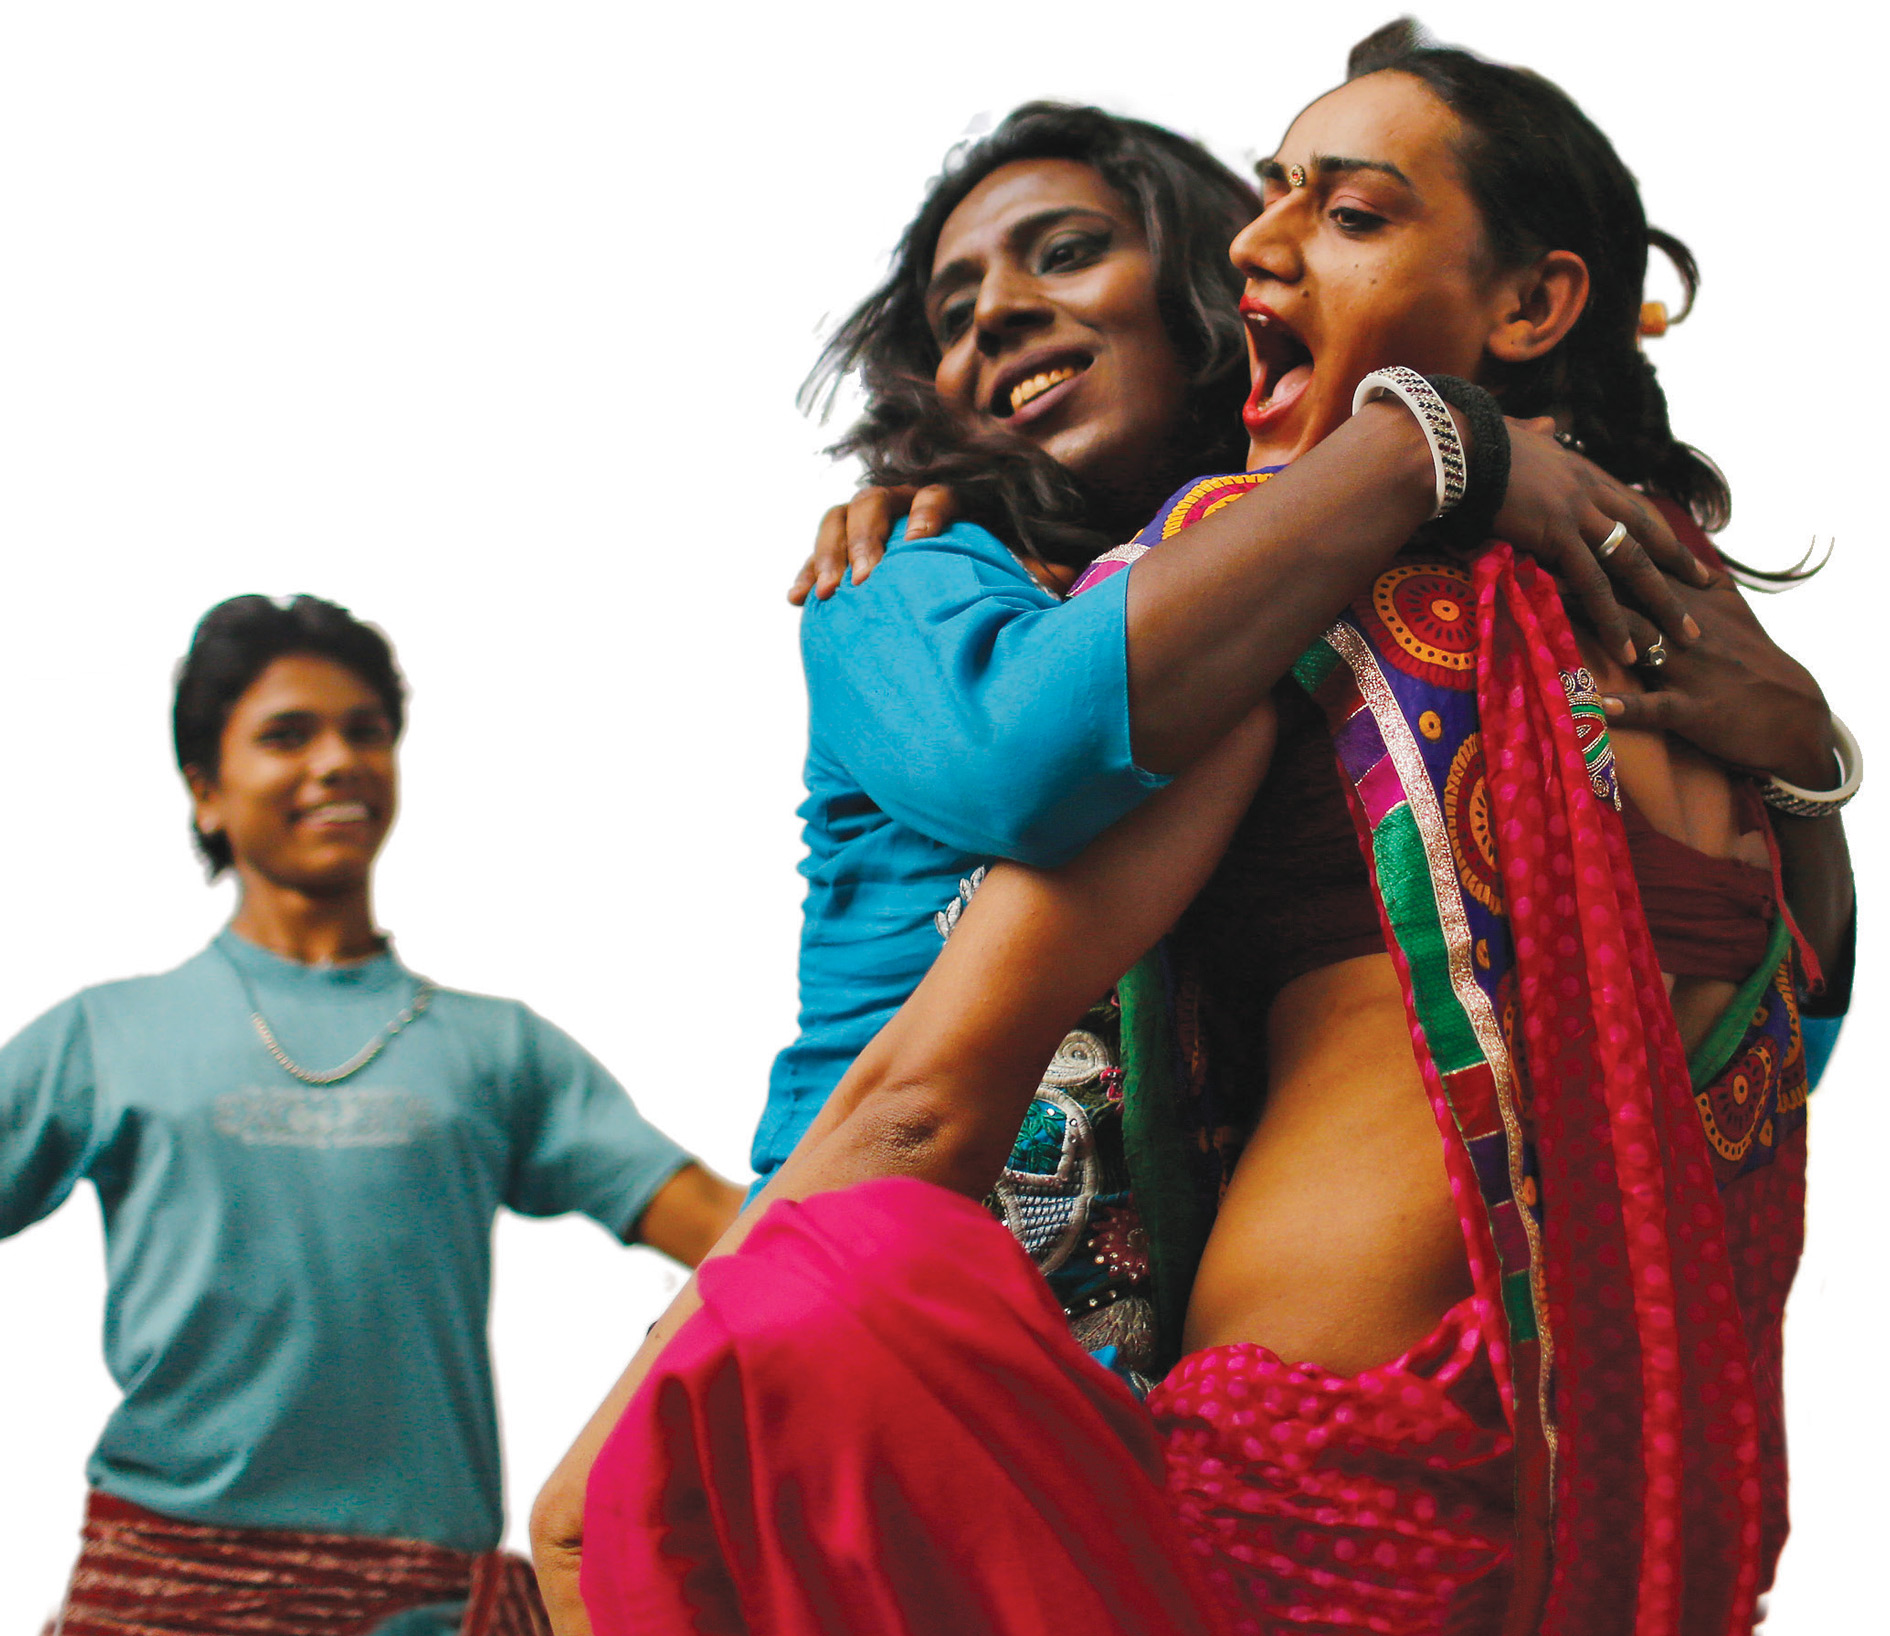 Hijras in Delhi celebrate the Indian Supreme Court's recognition of the marginalized transgender community as 'Third Gender'.